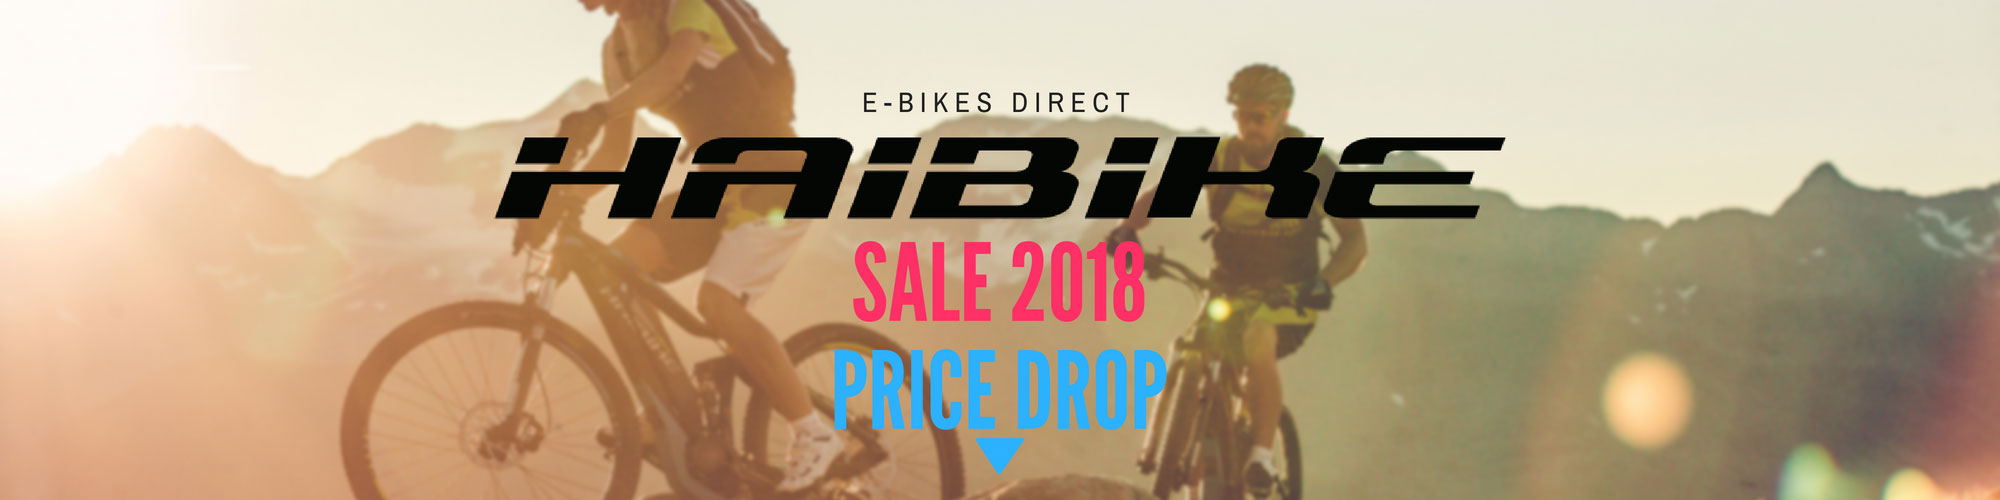 Haibike Electric Bike Sale 2018